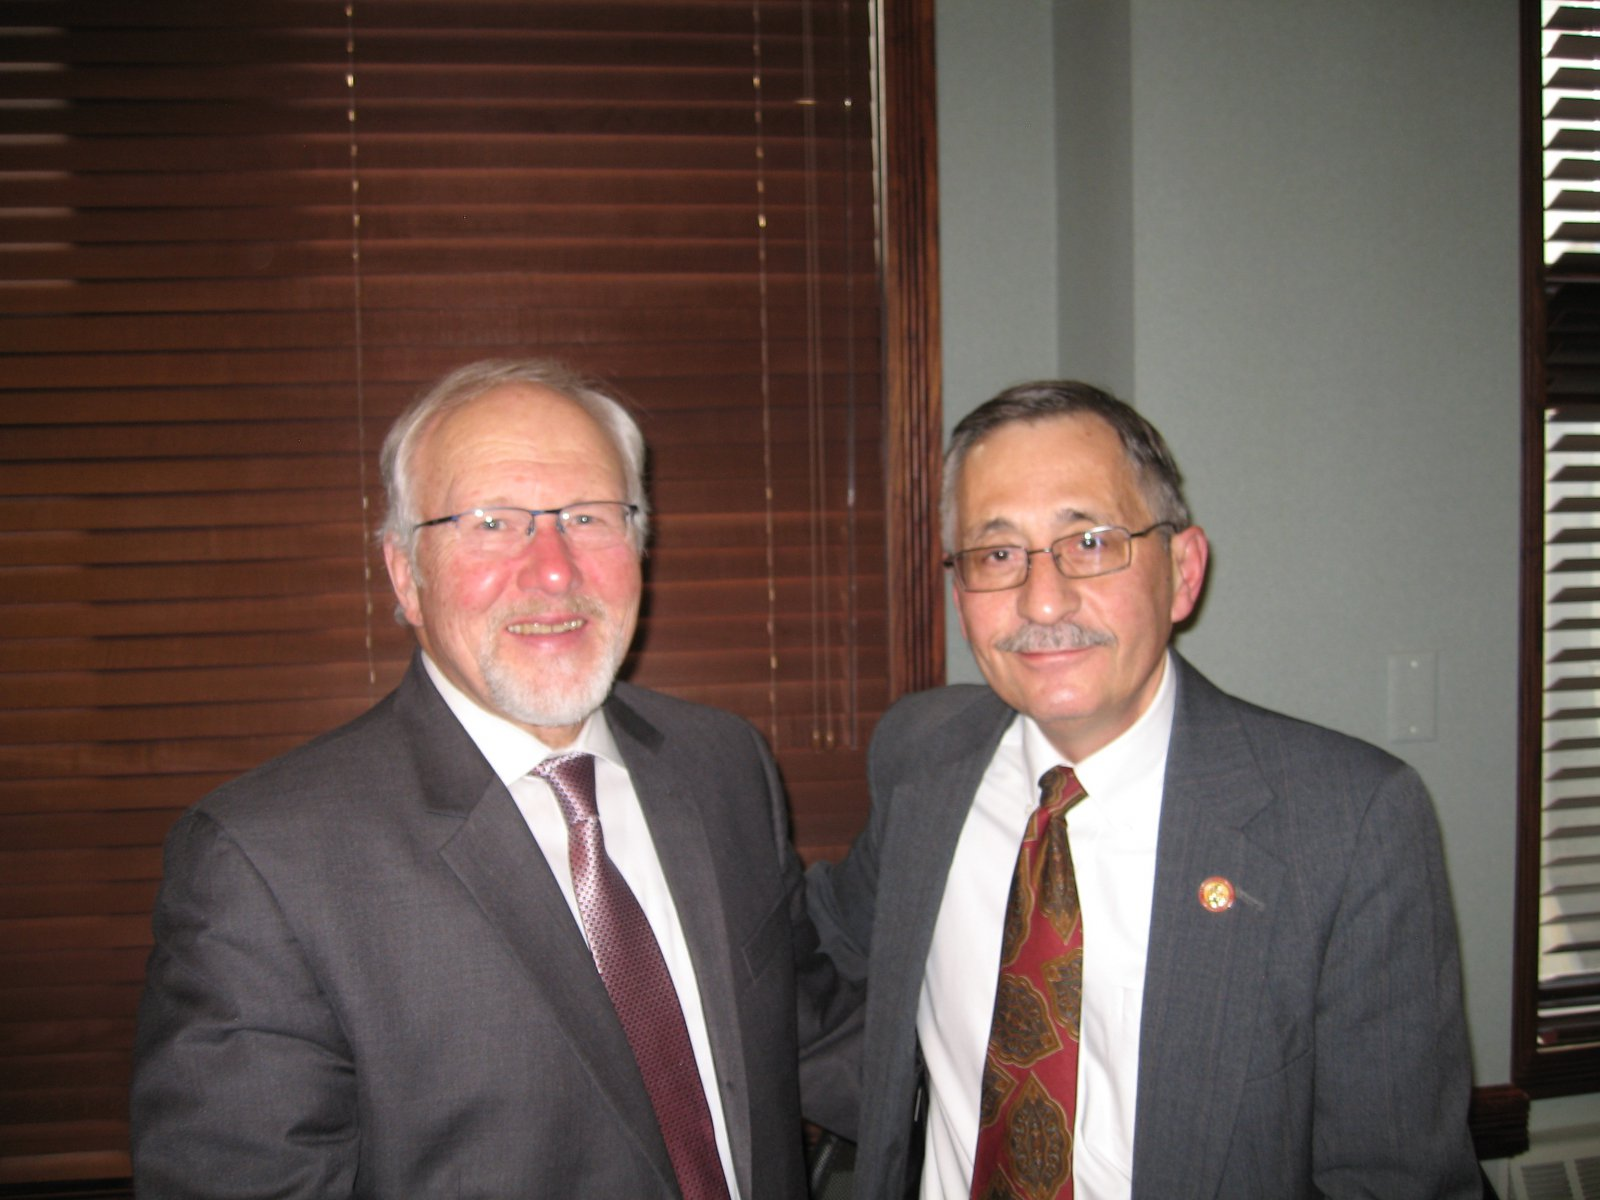 Steven Walters and John J. DiMotto